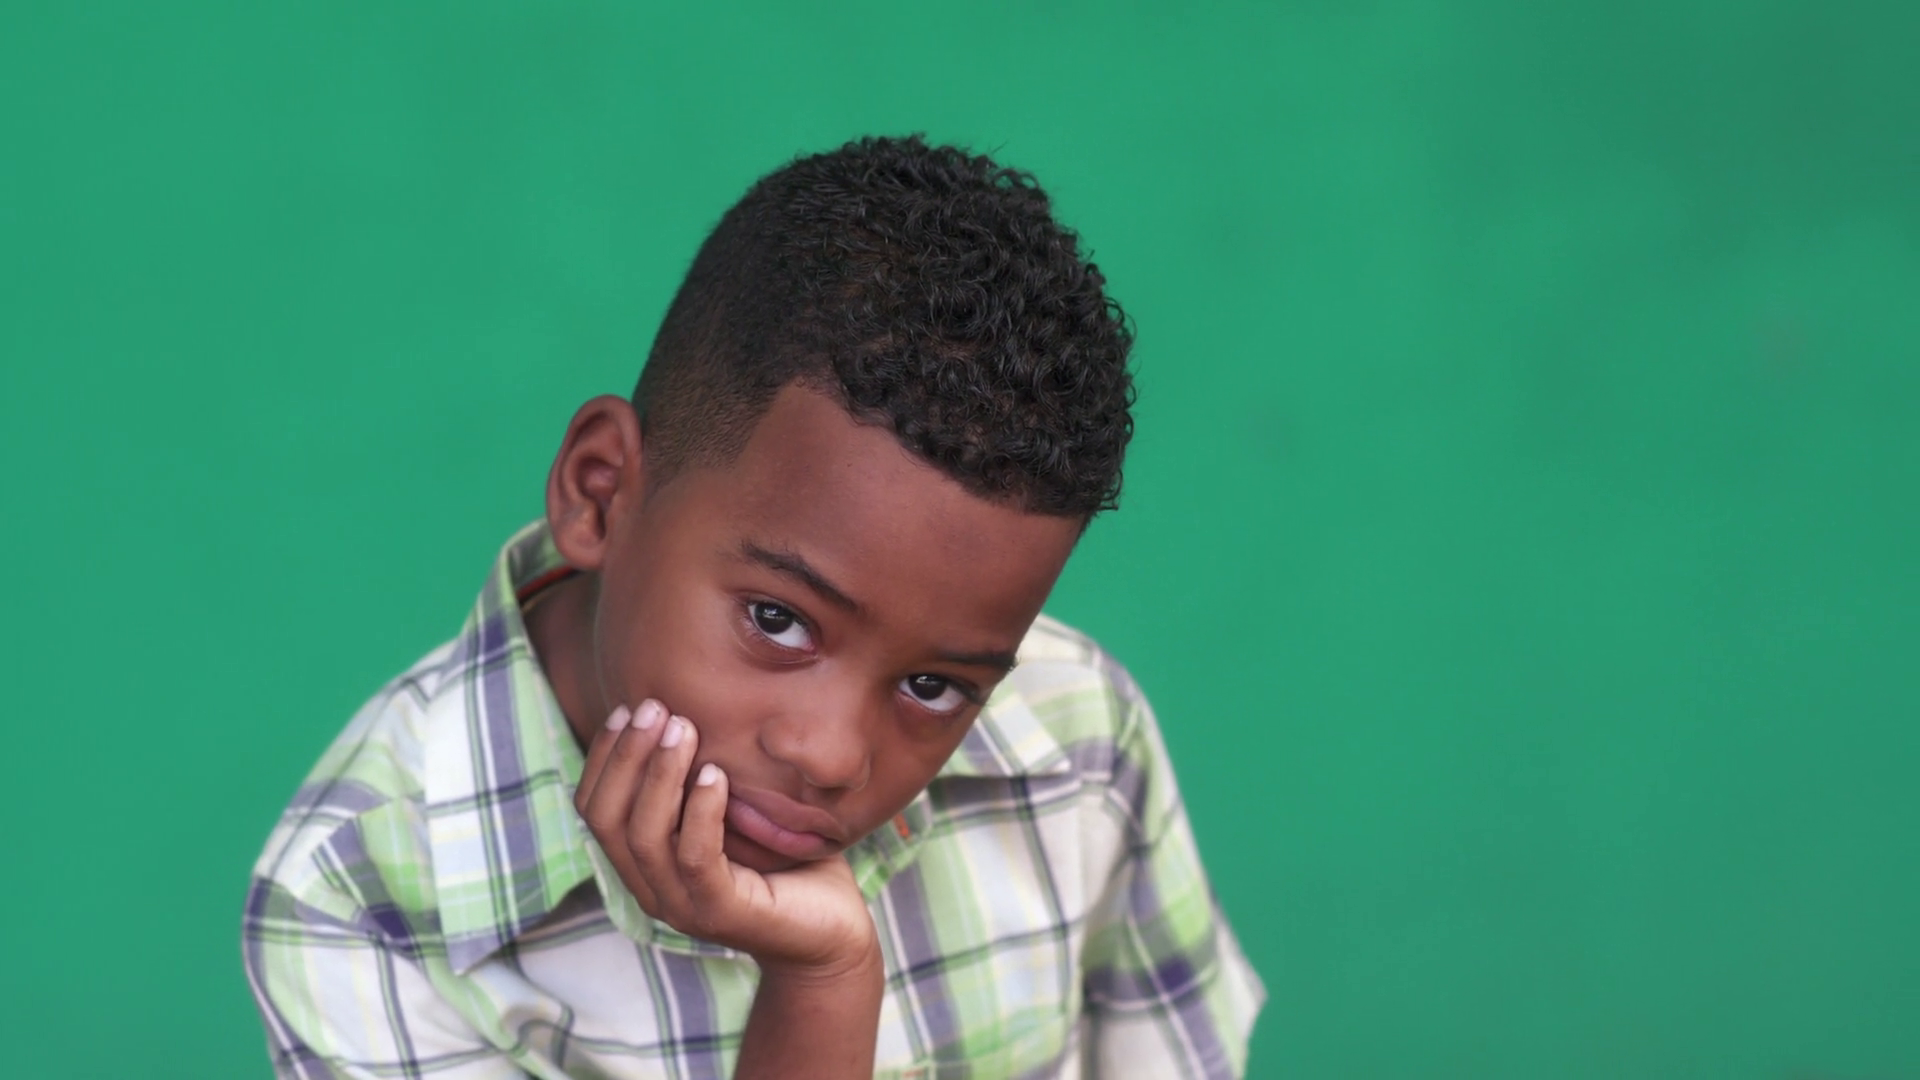 Portrait of sad children with emotions and feelings. Worried hispanic or black young boy looking at camera, male child with depressed expression on face. Close-up, copy space Stock Video Footage - Storyblocks